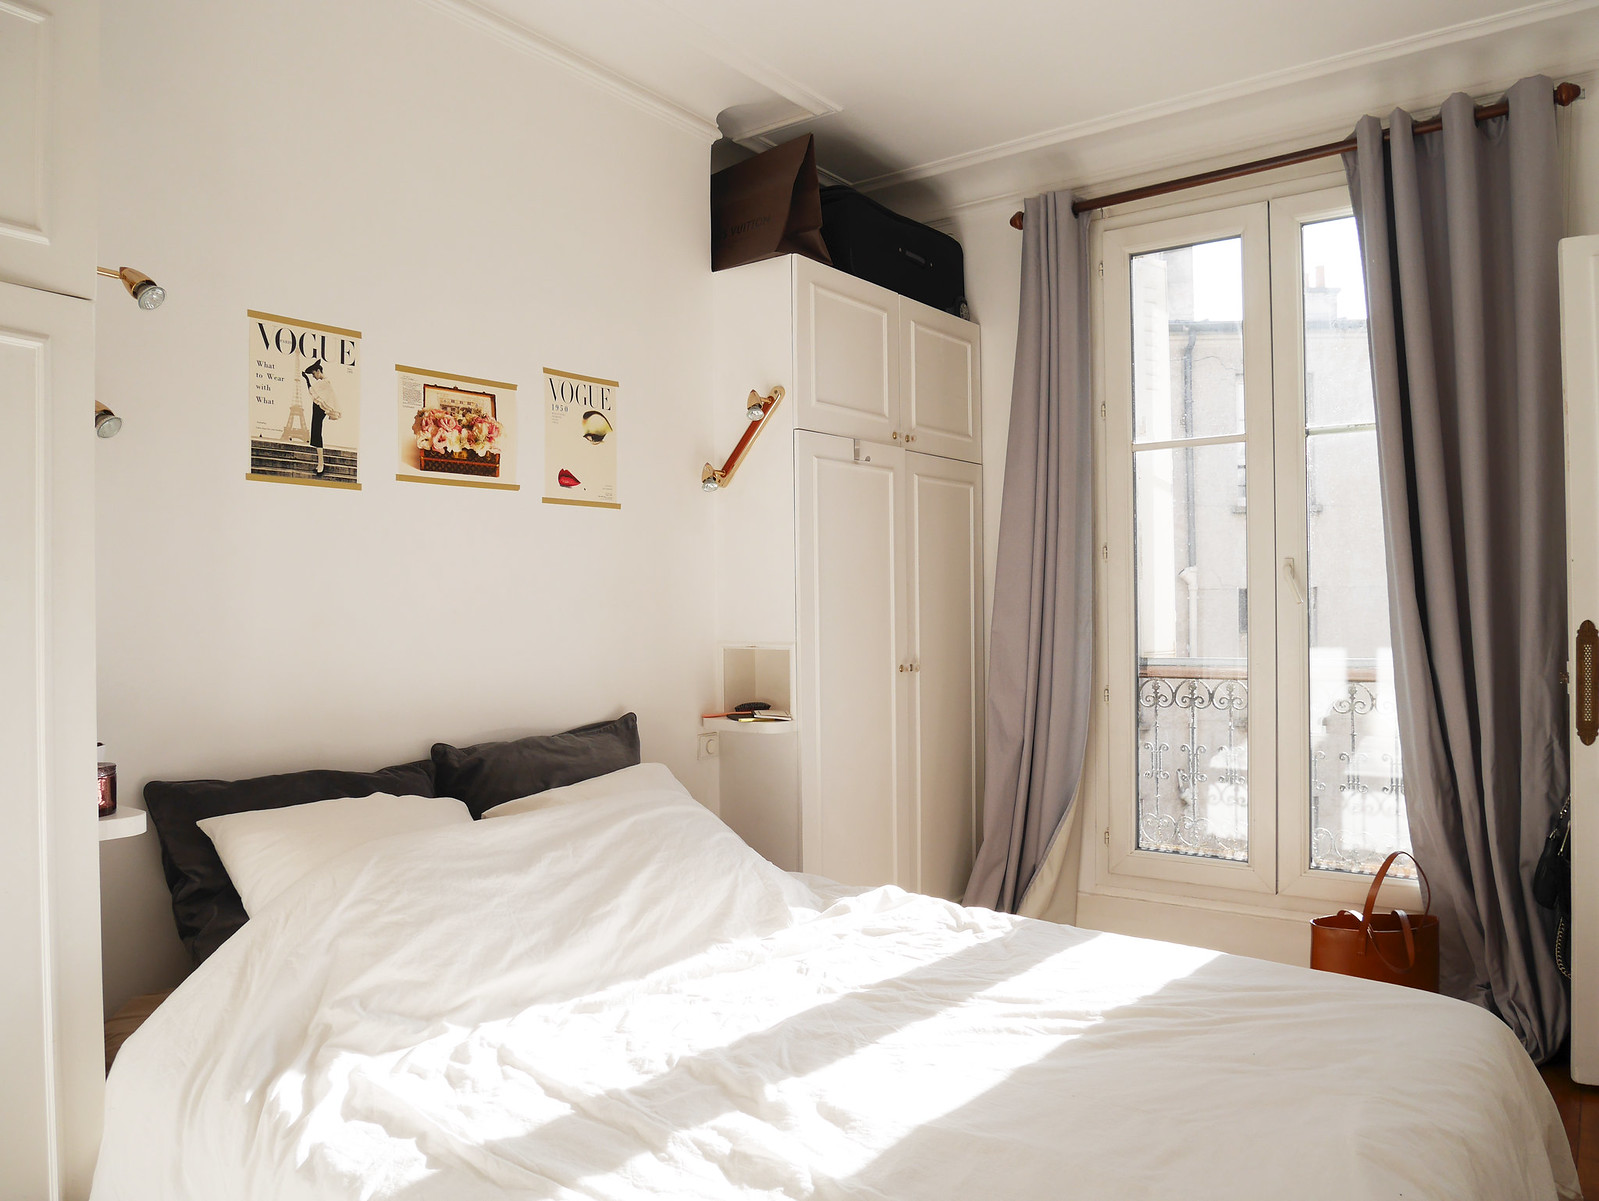 My Parisian home